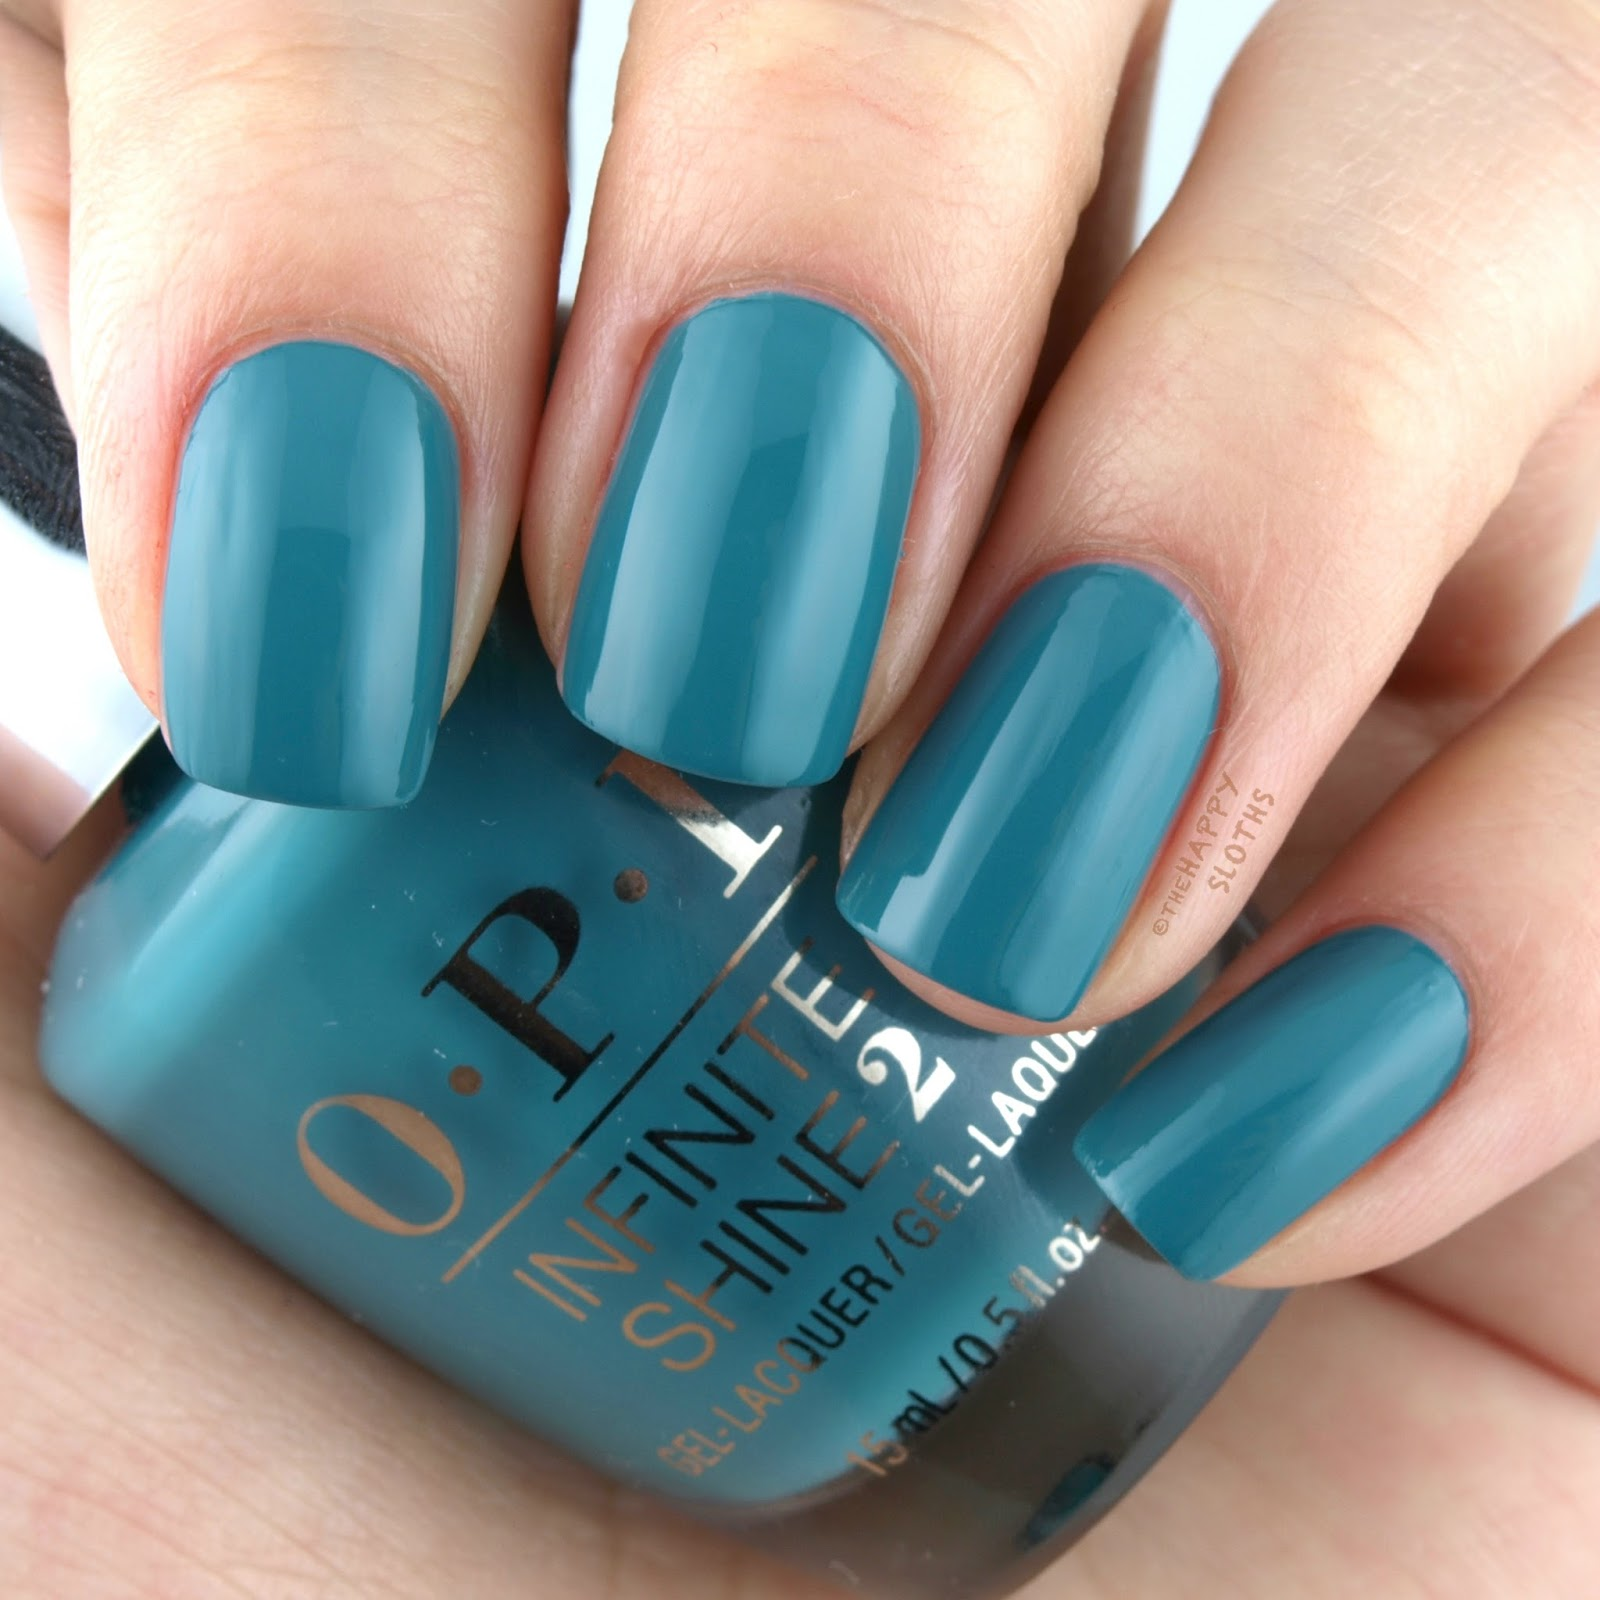 OPI Fiji Is That a Spear in Your Pocket Swatches and Review